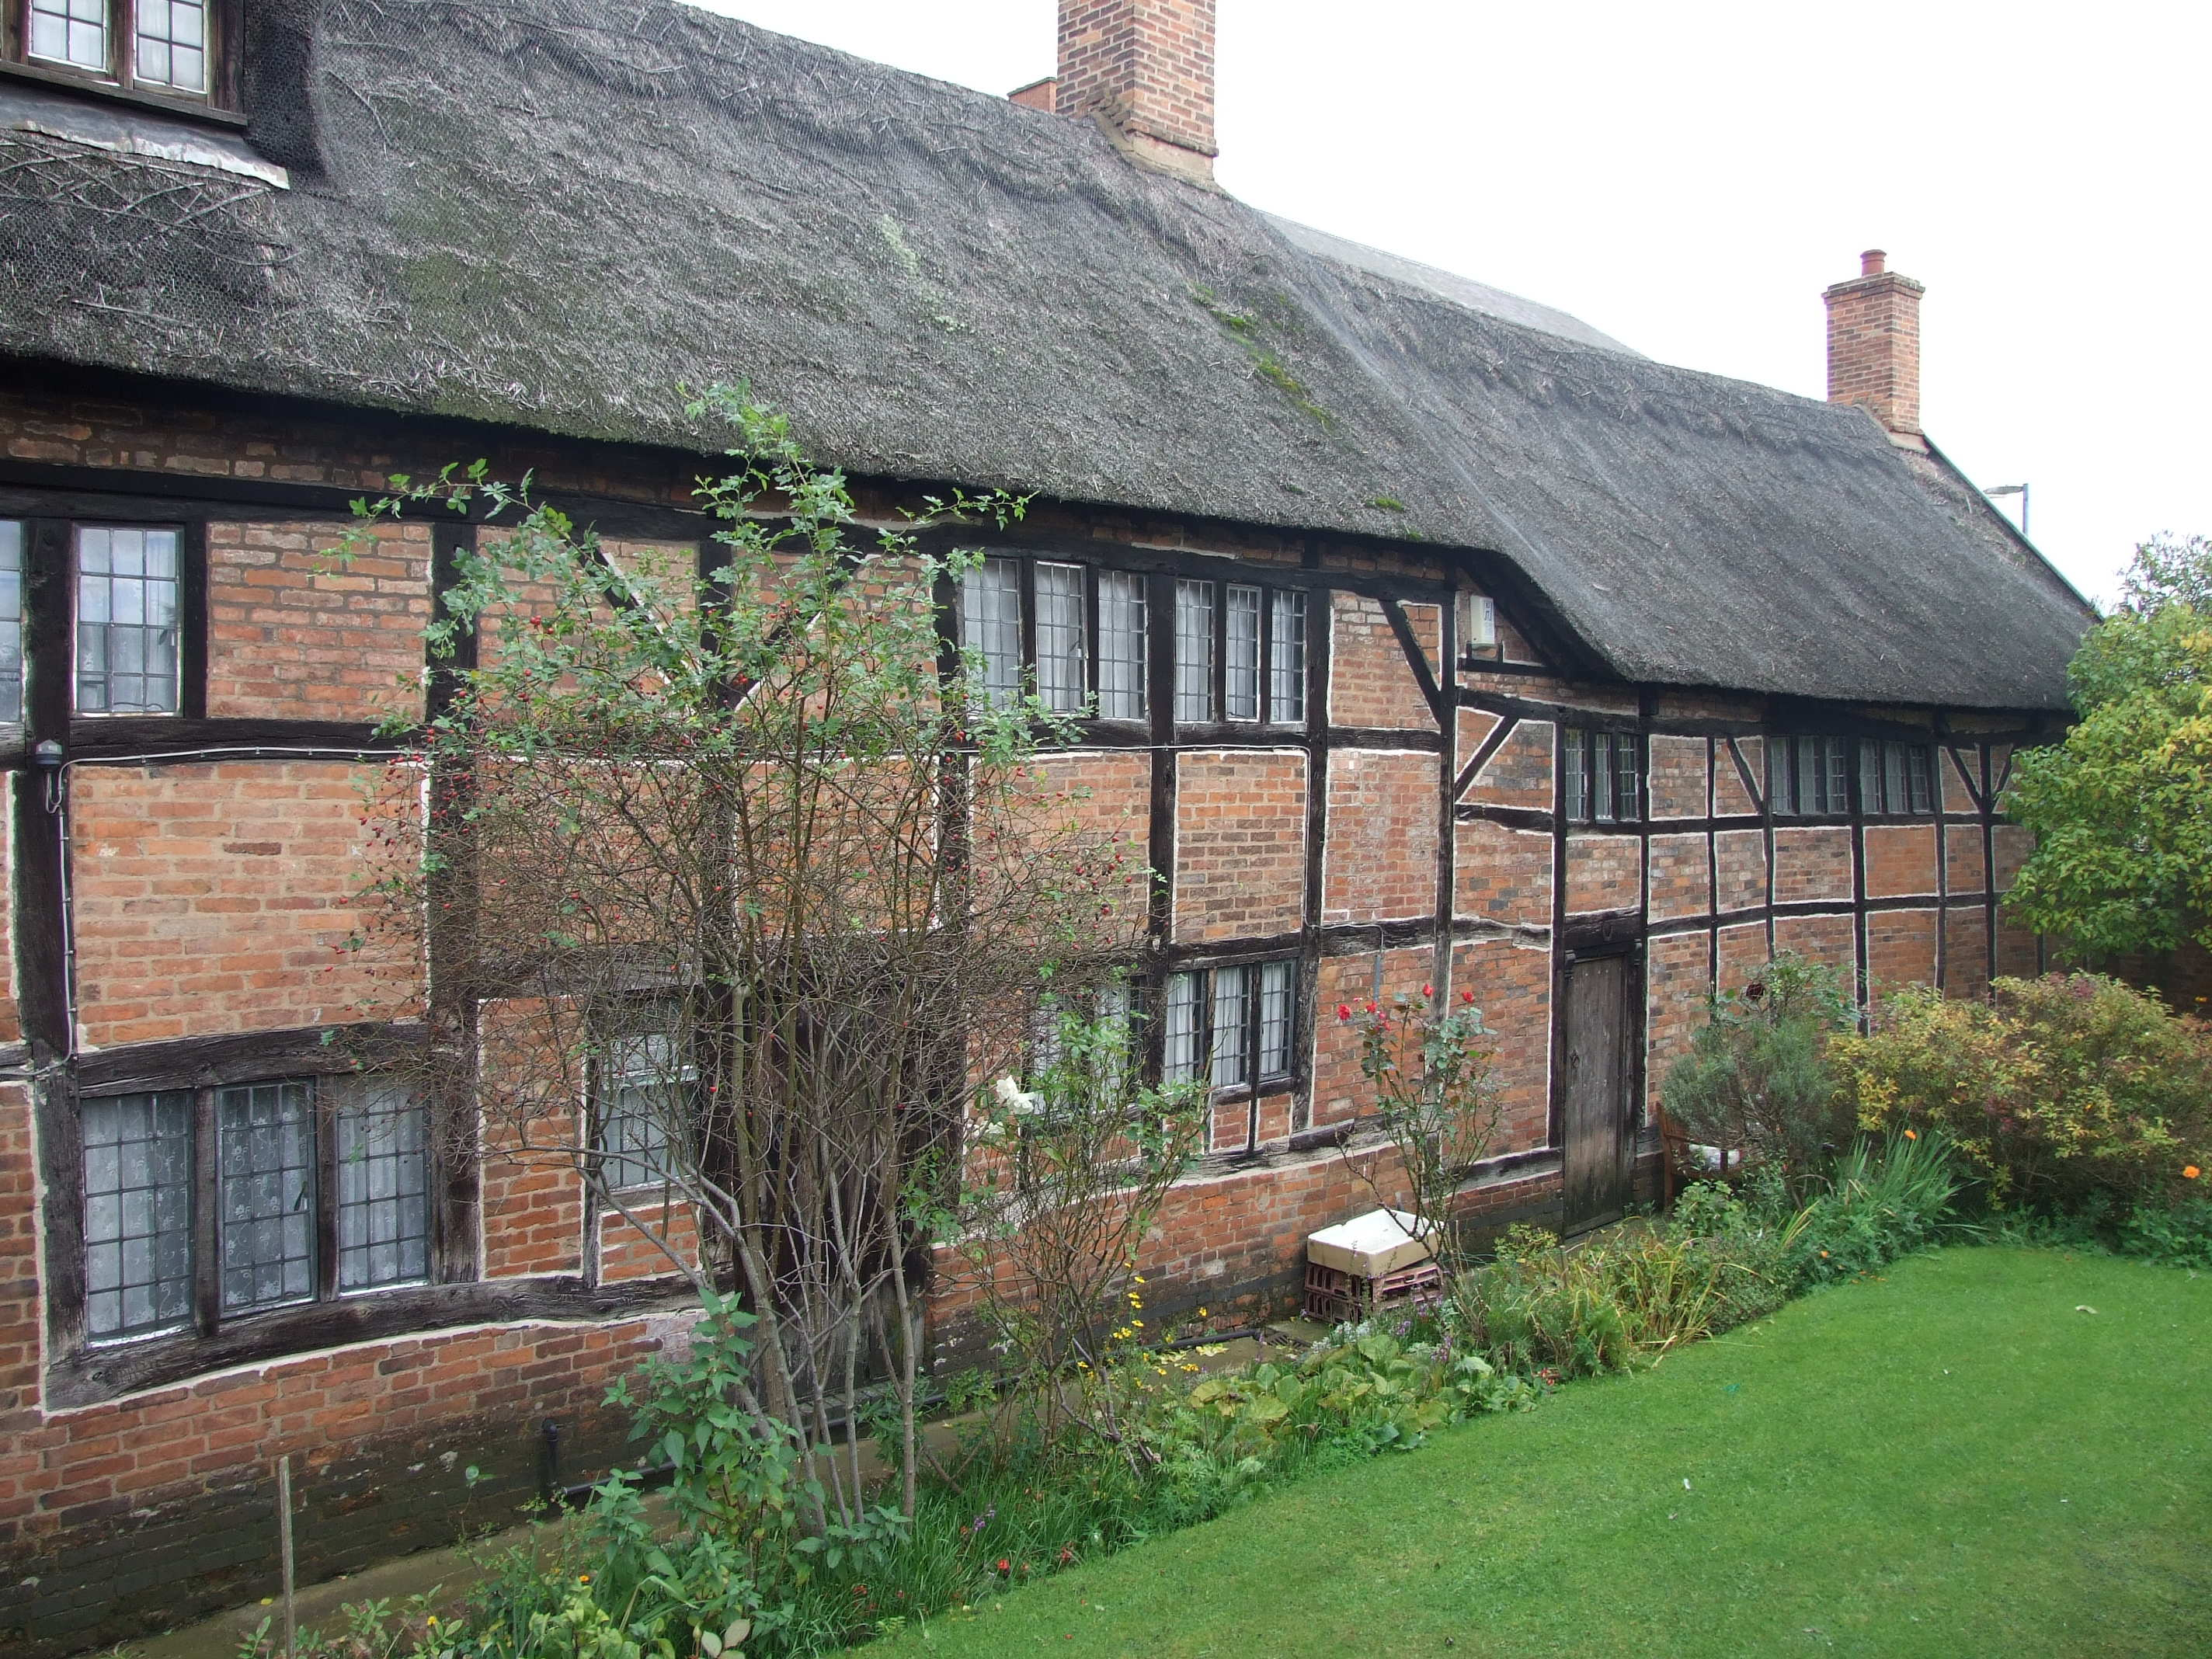 A photo of a three story brick building, with a wooden frame inlaid in the brickwork and a thatched roof. There are many windows, each containing lots of small panes of glass. In front of the building is a garden and lawn.